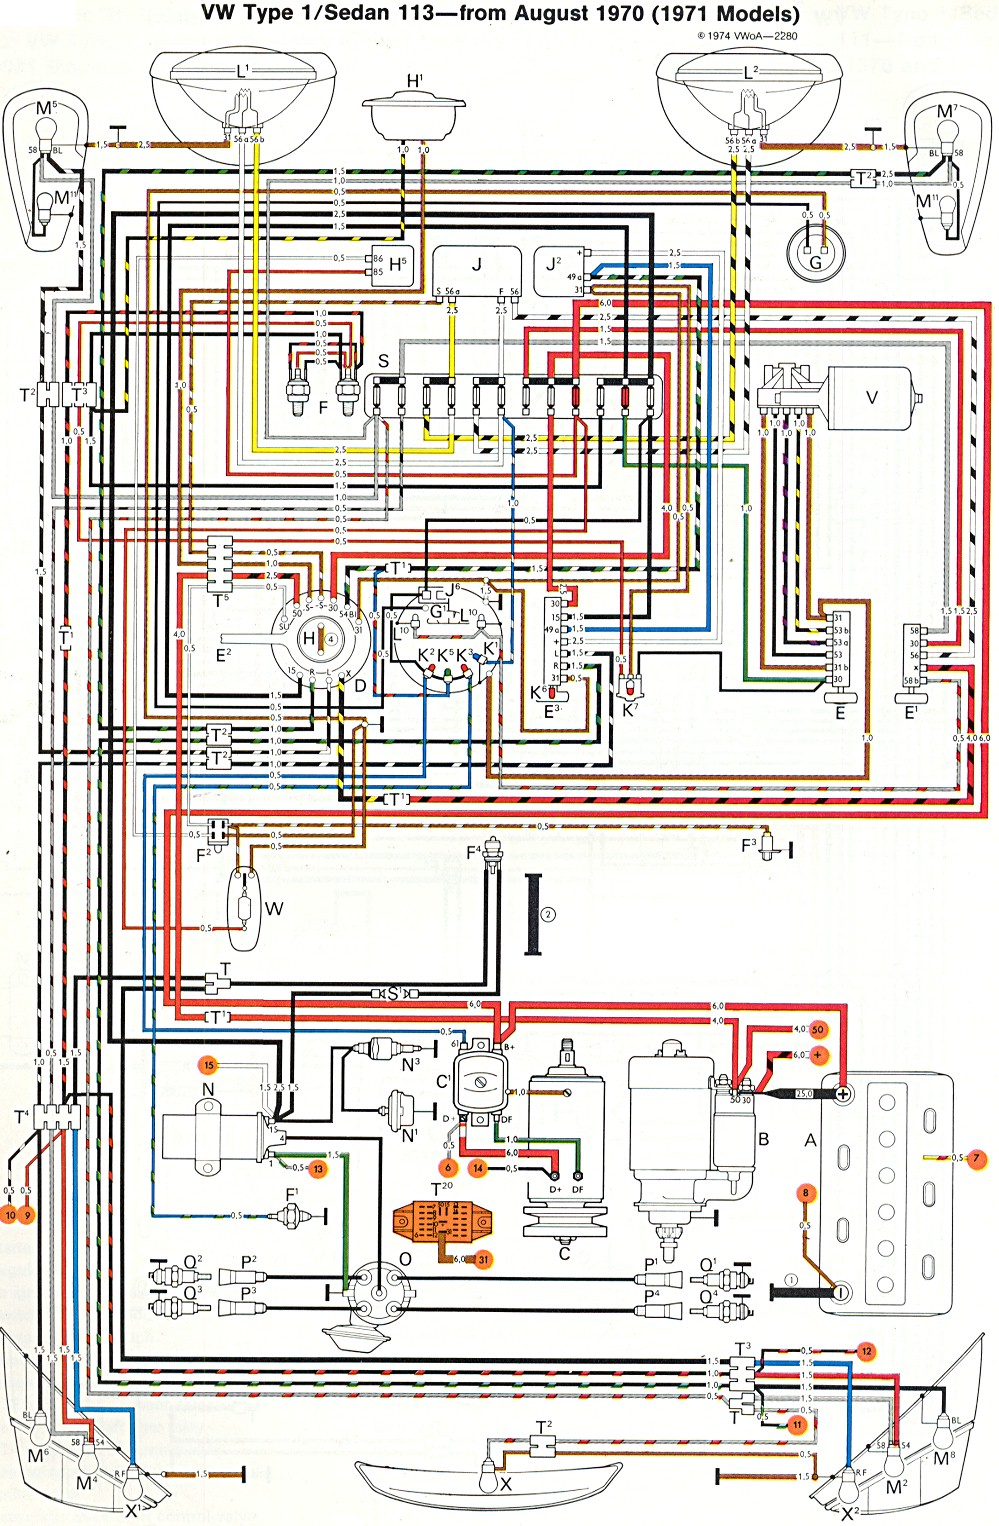 2006 vw beetle fuse diagram wrg 0325  2006 vw passat fuse diagram 2006 volkswagen beetle wiring diagram wrg 0325  2006 vw passat fuse diagram